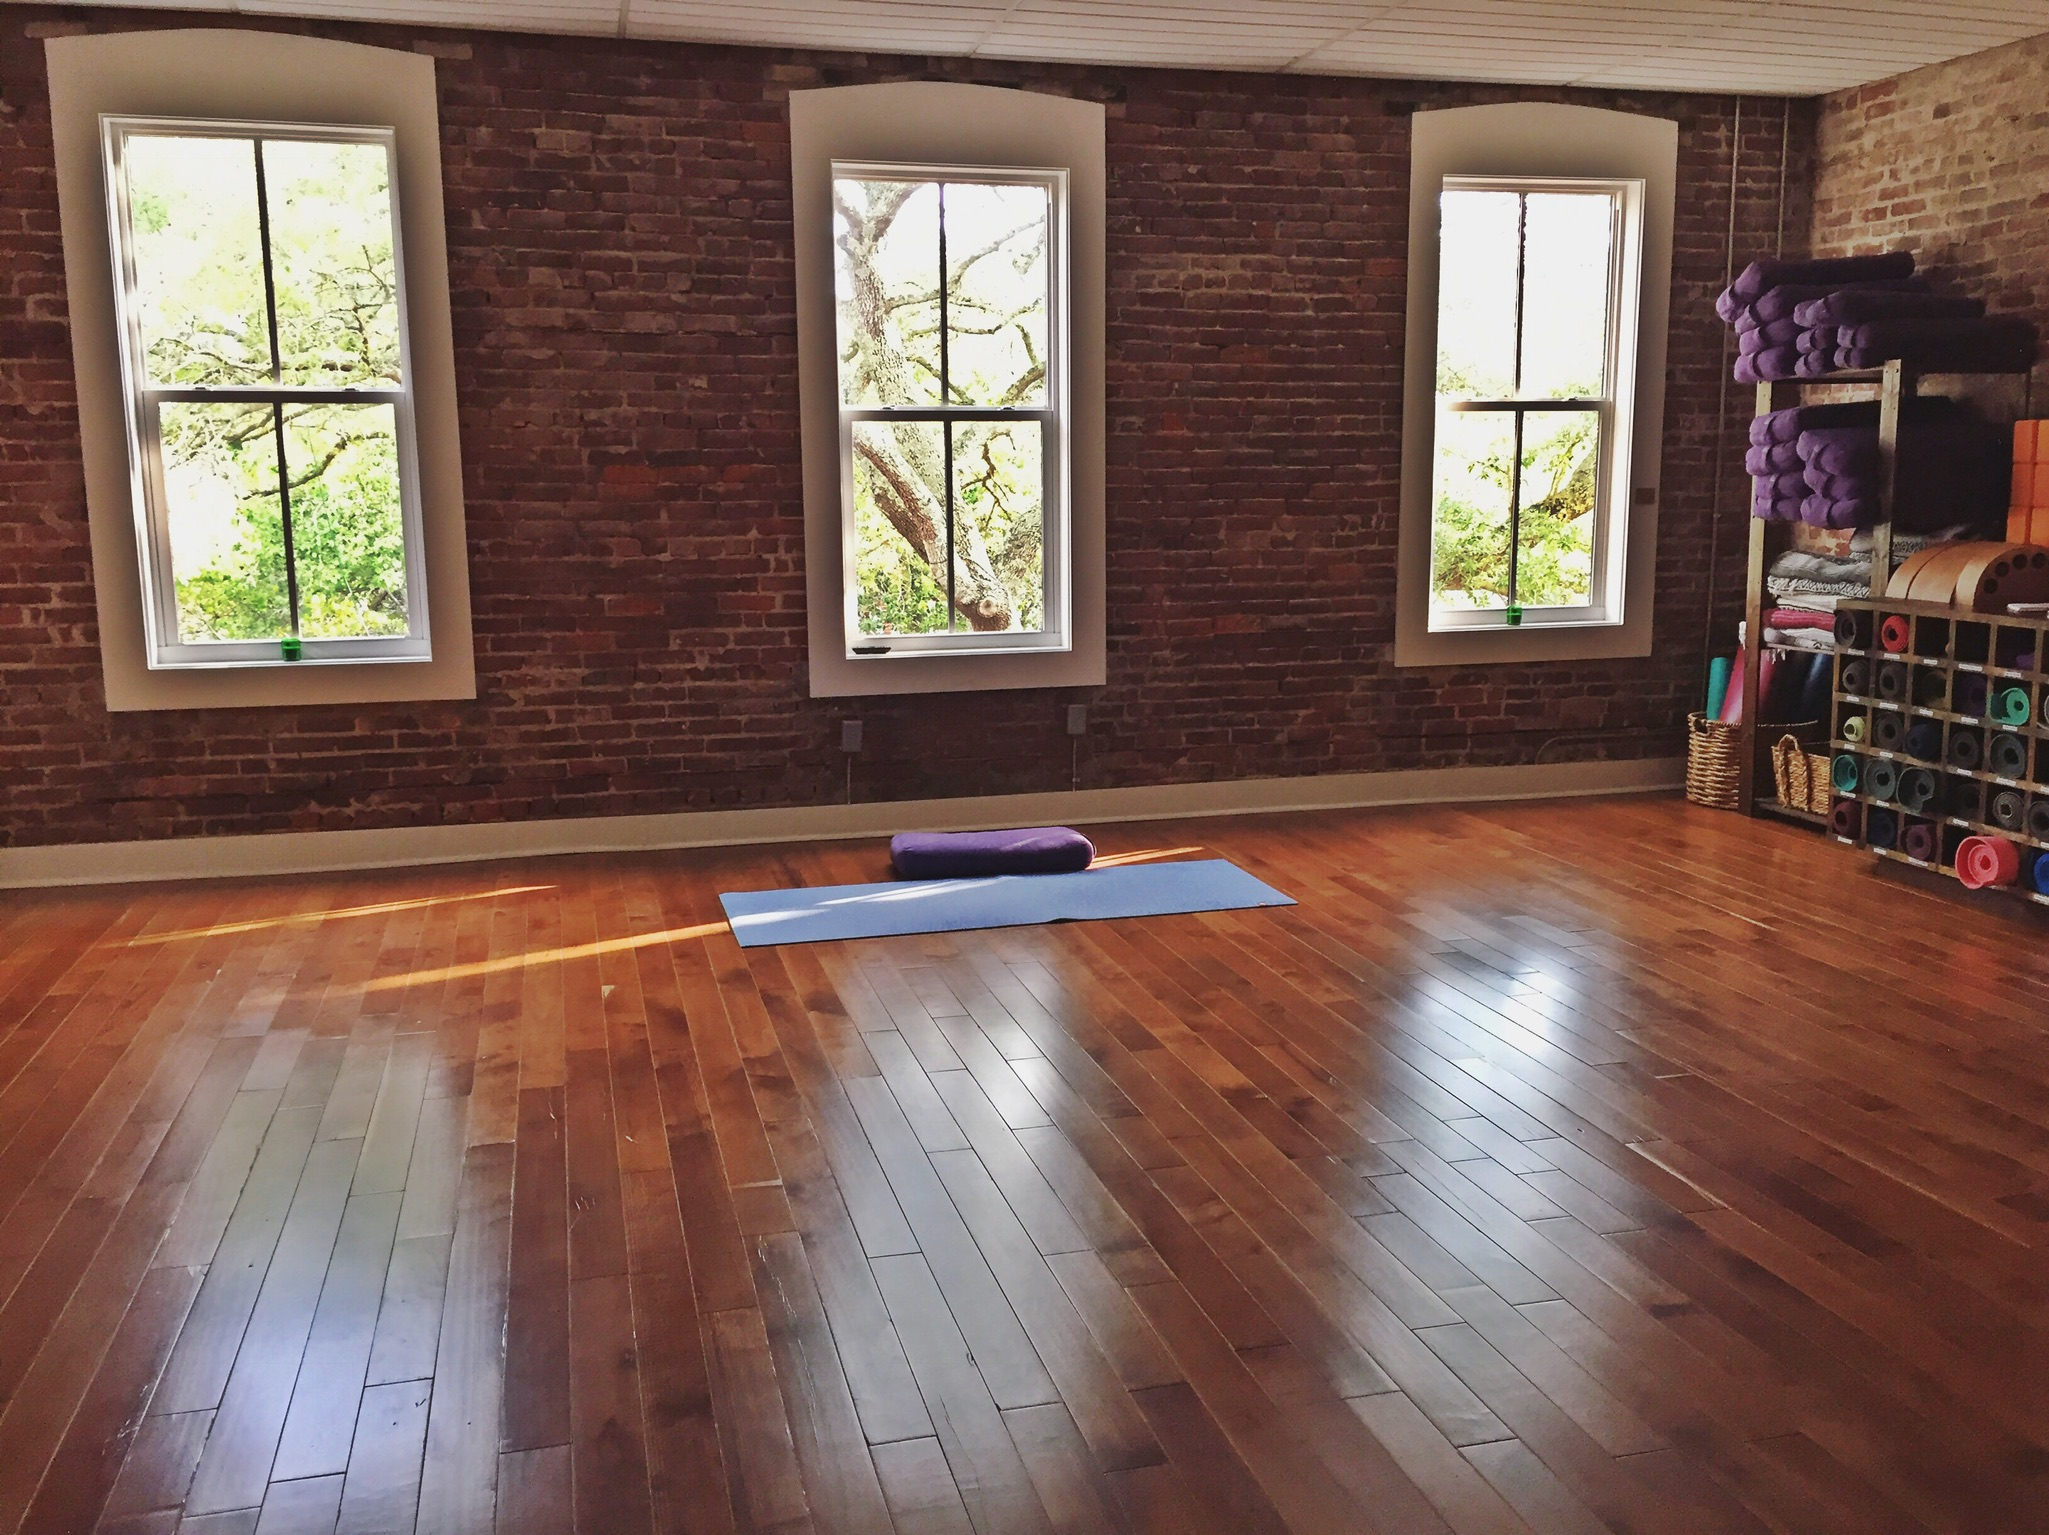 Peaceful Sunday morning. Come enjoy and share this space with Meghan (May)! Your body's movements are invited to be used as medicine.